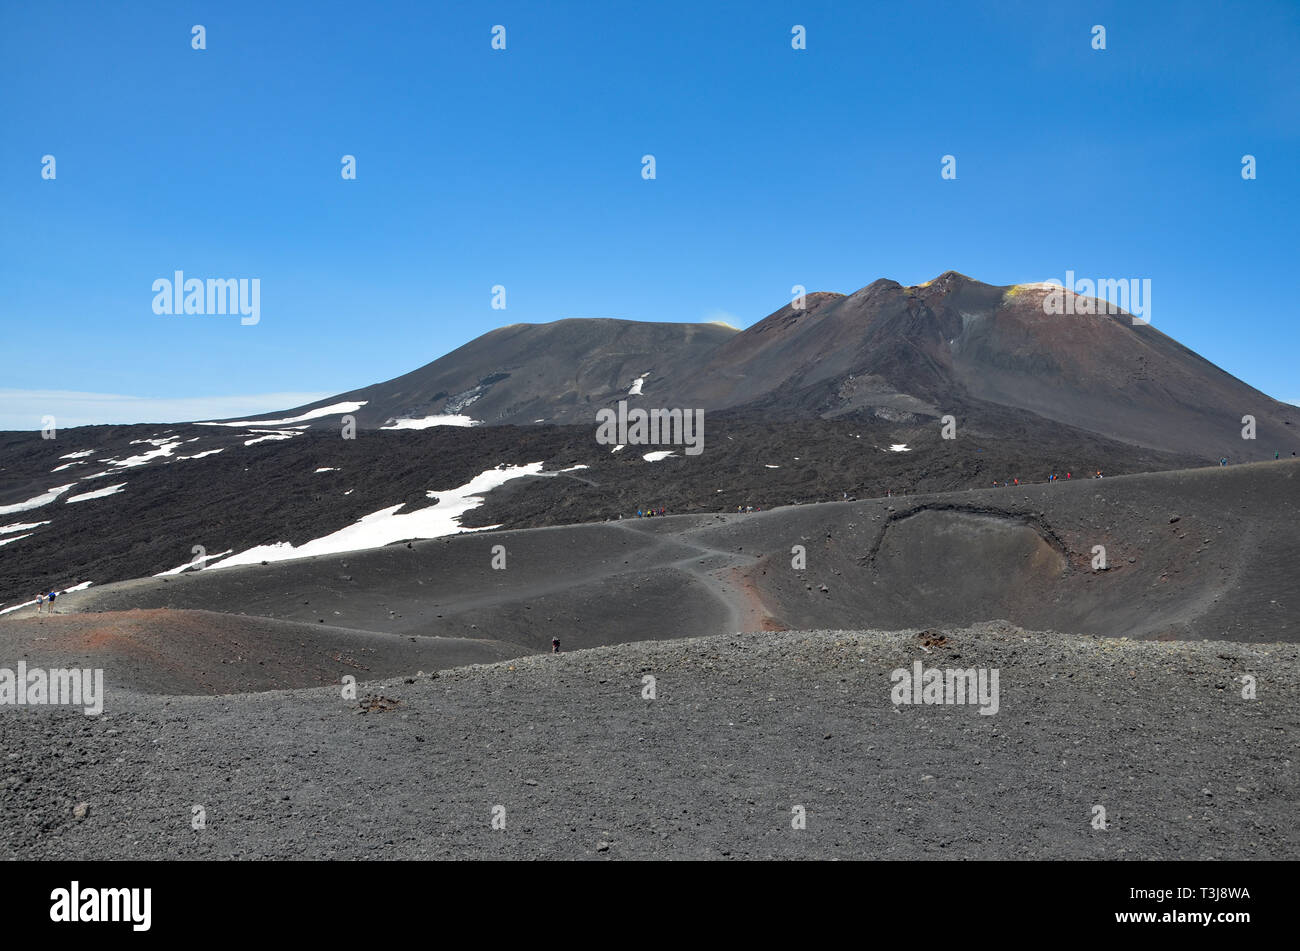 Etna volcano in Sicily, partly covered with snow, mediterranean coast, footpaths near the craters, blue sky, sunny, summer, adventure, experience - Stock Image